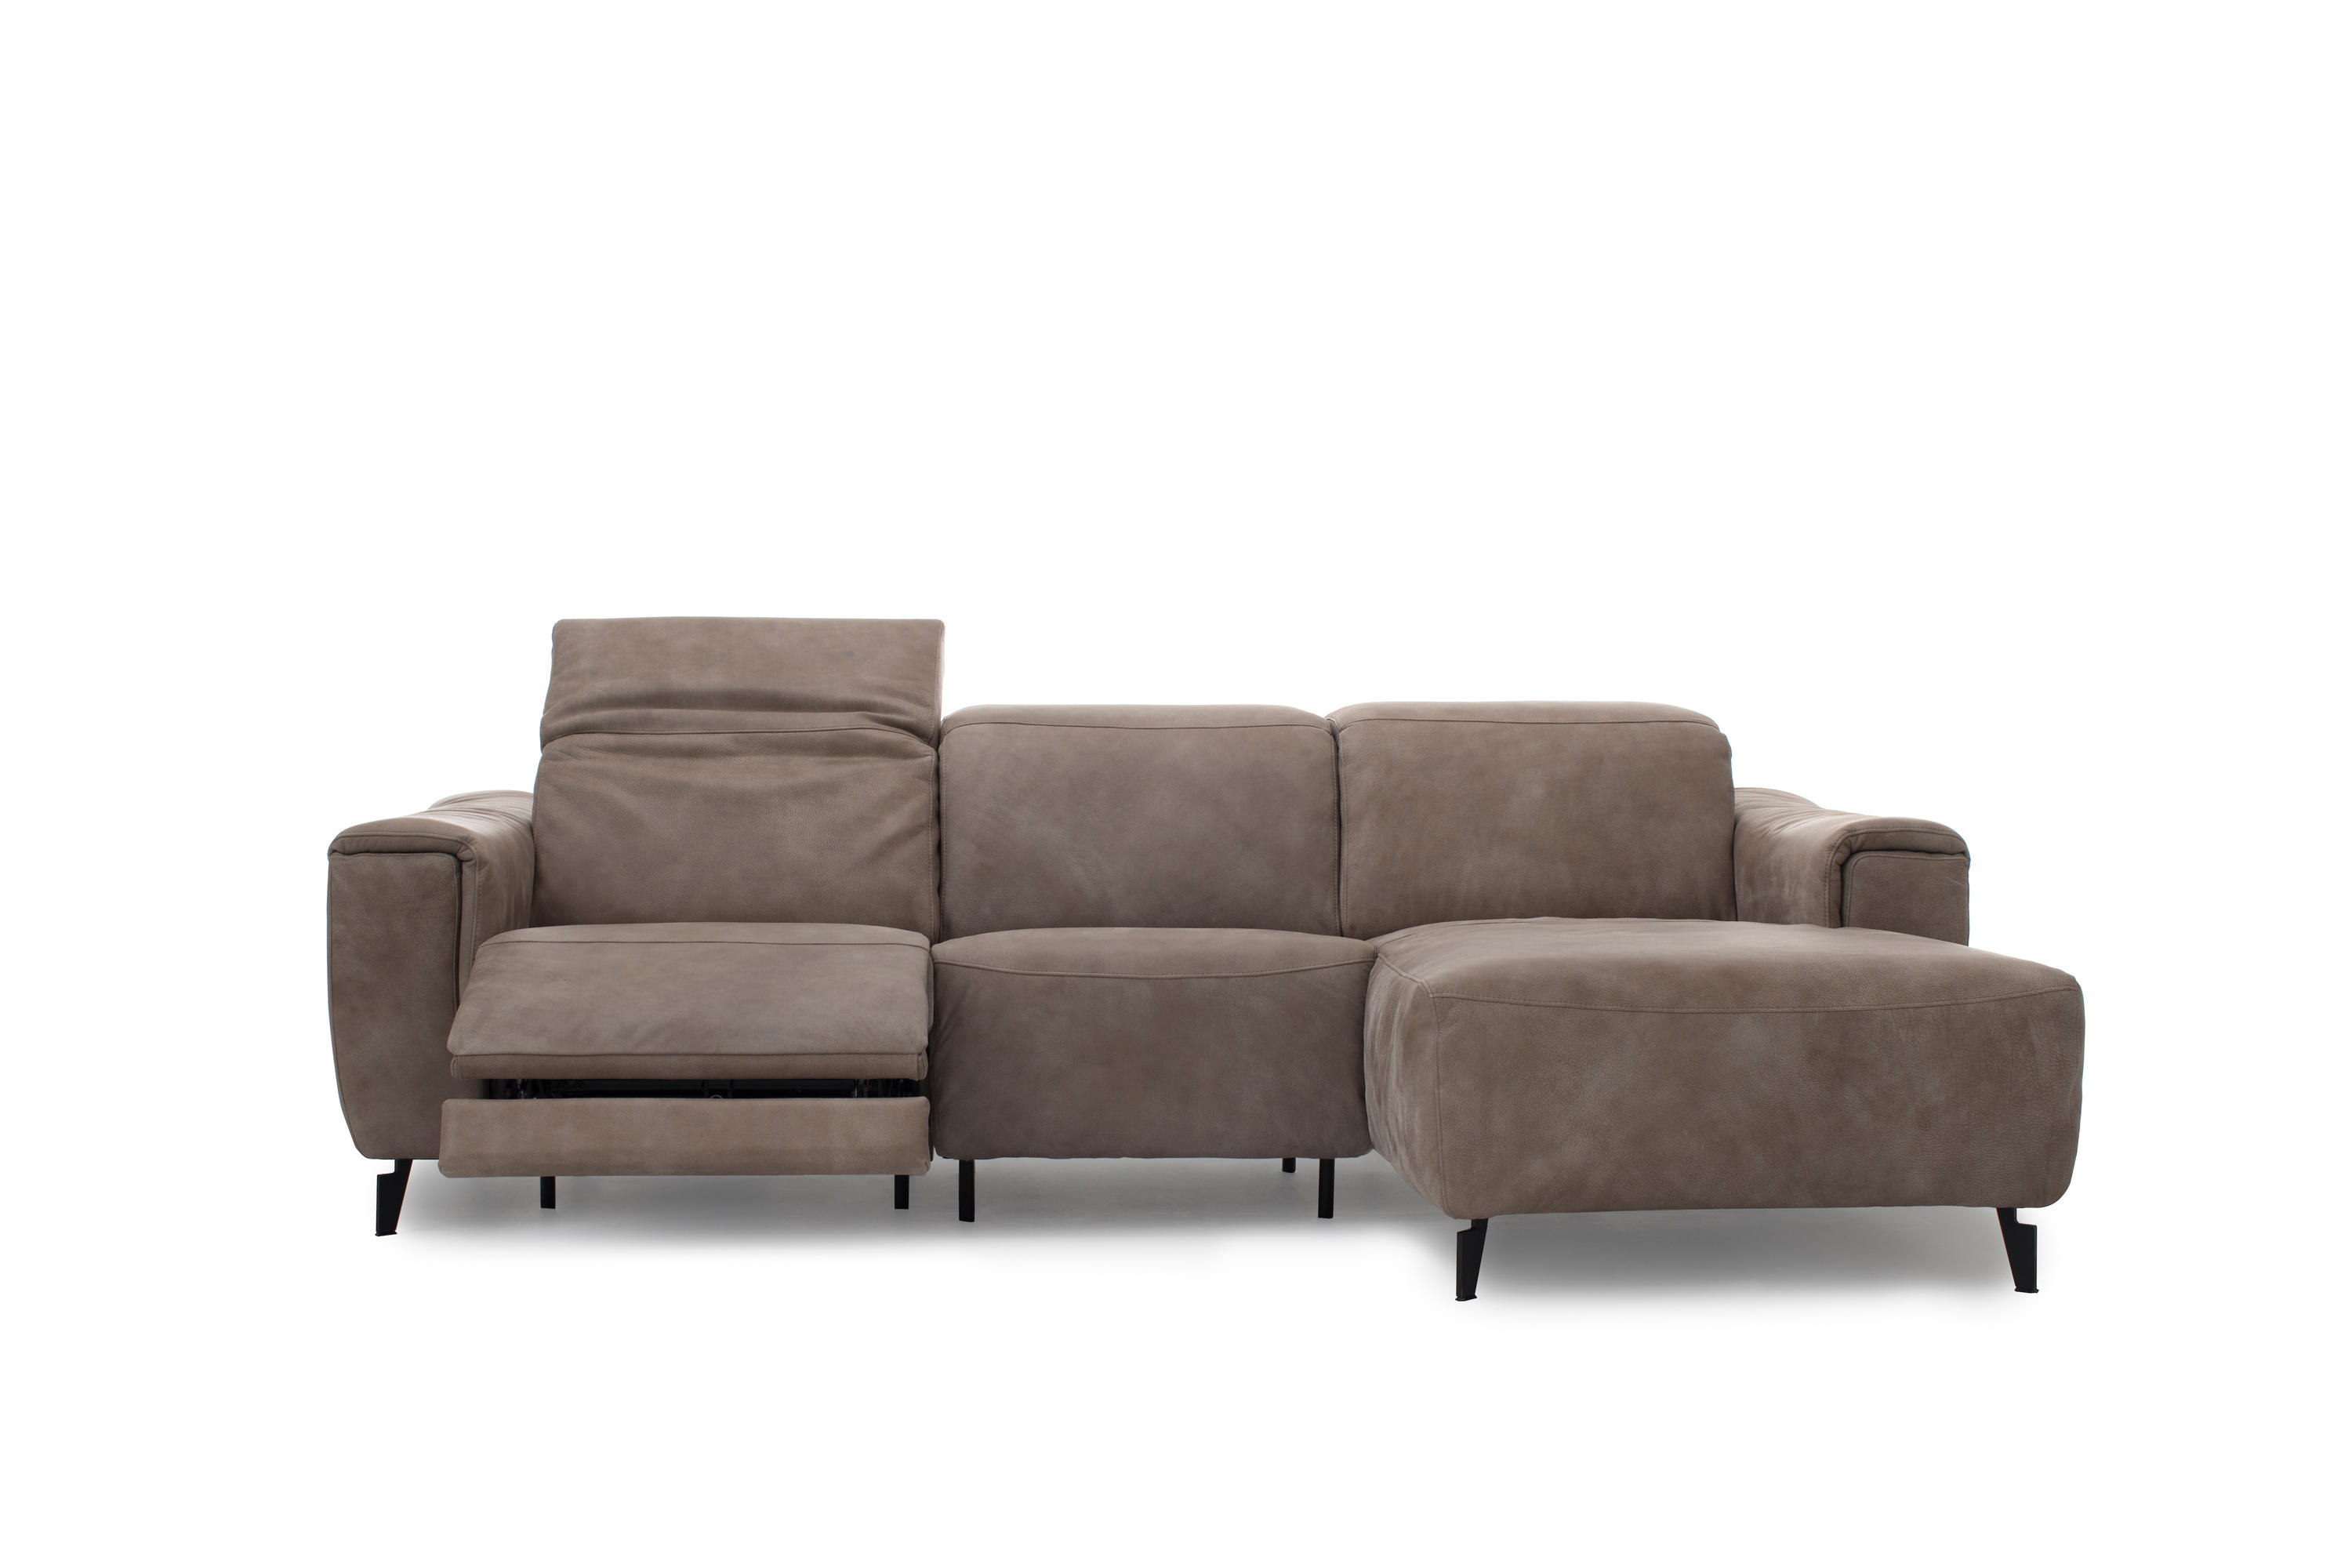 JOY RELAX SOFA - Sofas von Extraform | Architonic